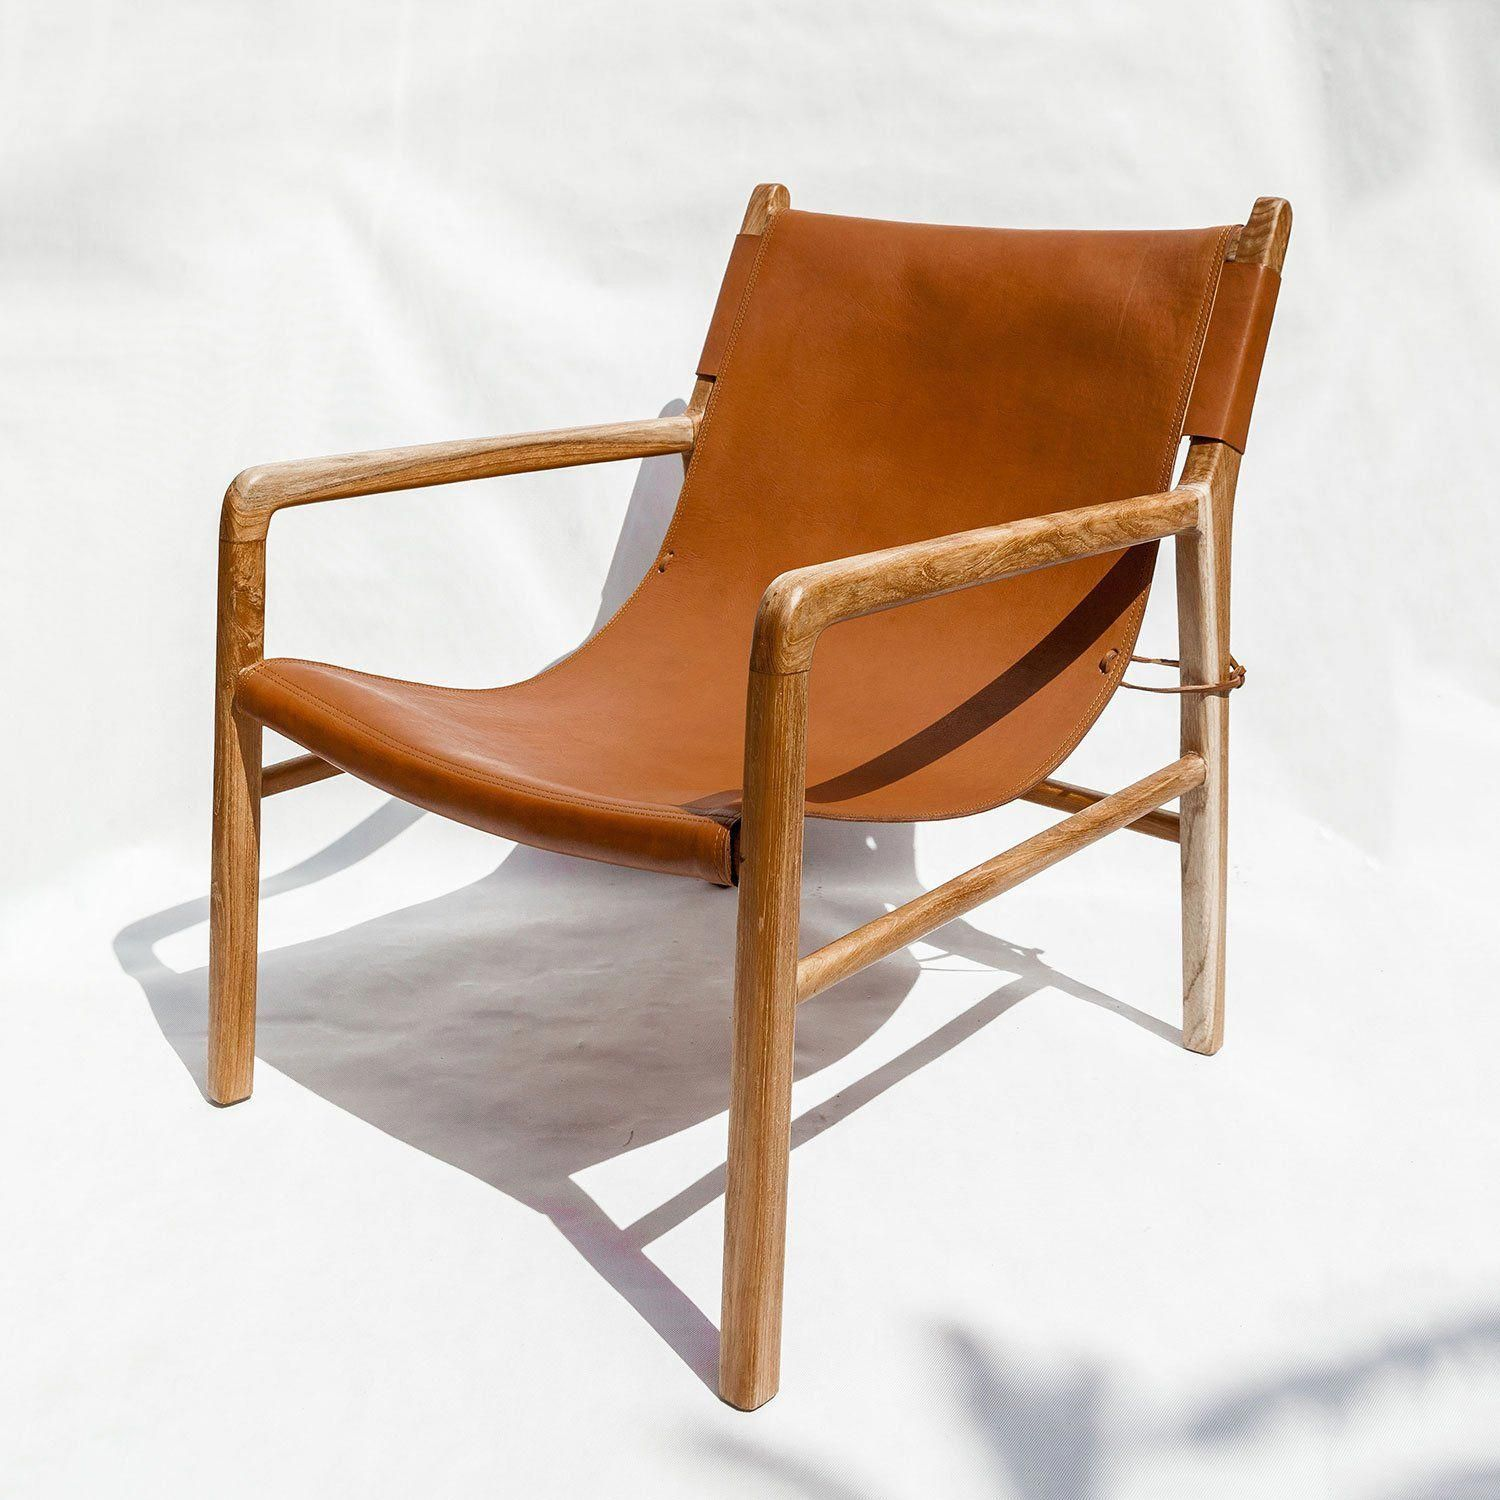 Hati Hati Home Waxed Teak Chair With Solid Leather Panels Hatihome Chairs Leather Sling Chair Chair Design Wooden Leather Lounge Chair